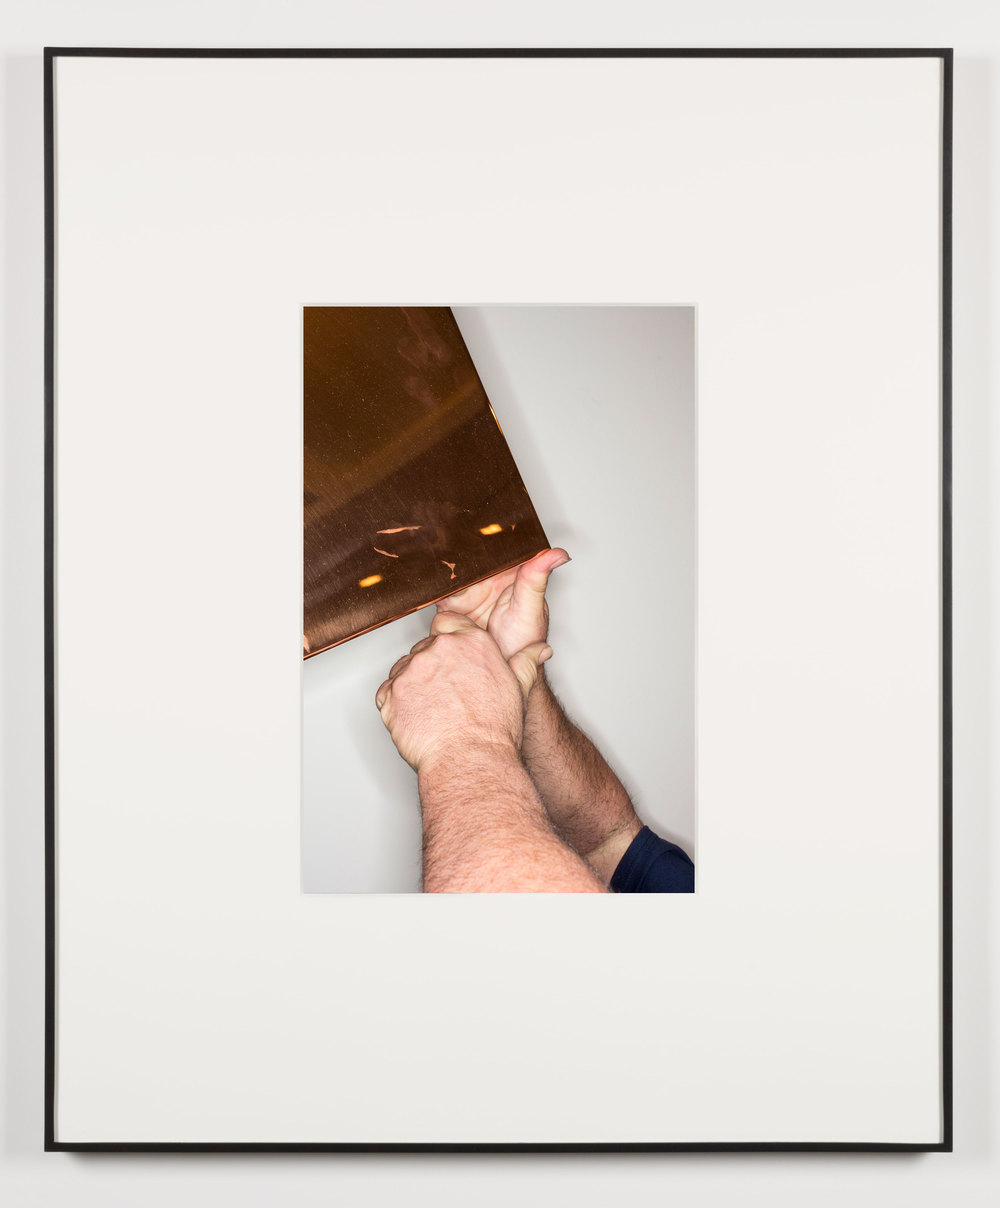 Das Gesicht des Terrors (Los Angeles, California, February 20, 2014)    2014   Chromogenic print  20 x 13 1/2 inches   Selected Bodies of Work, 2014